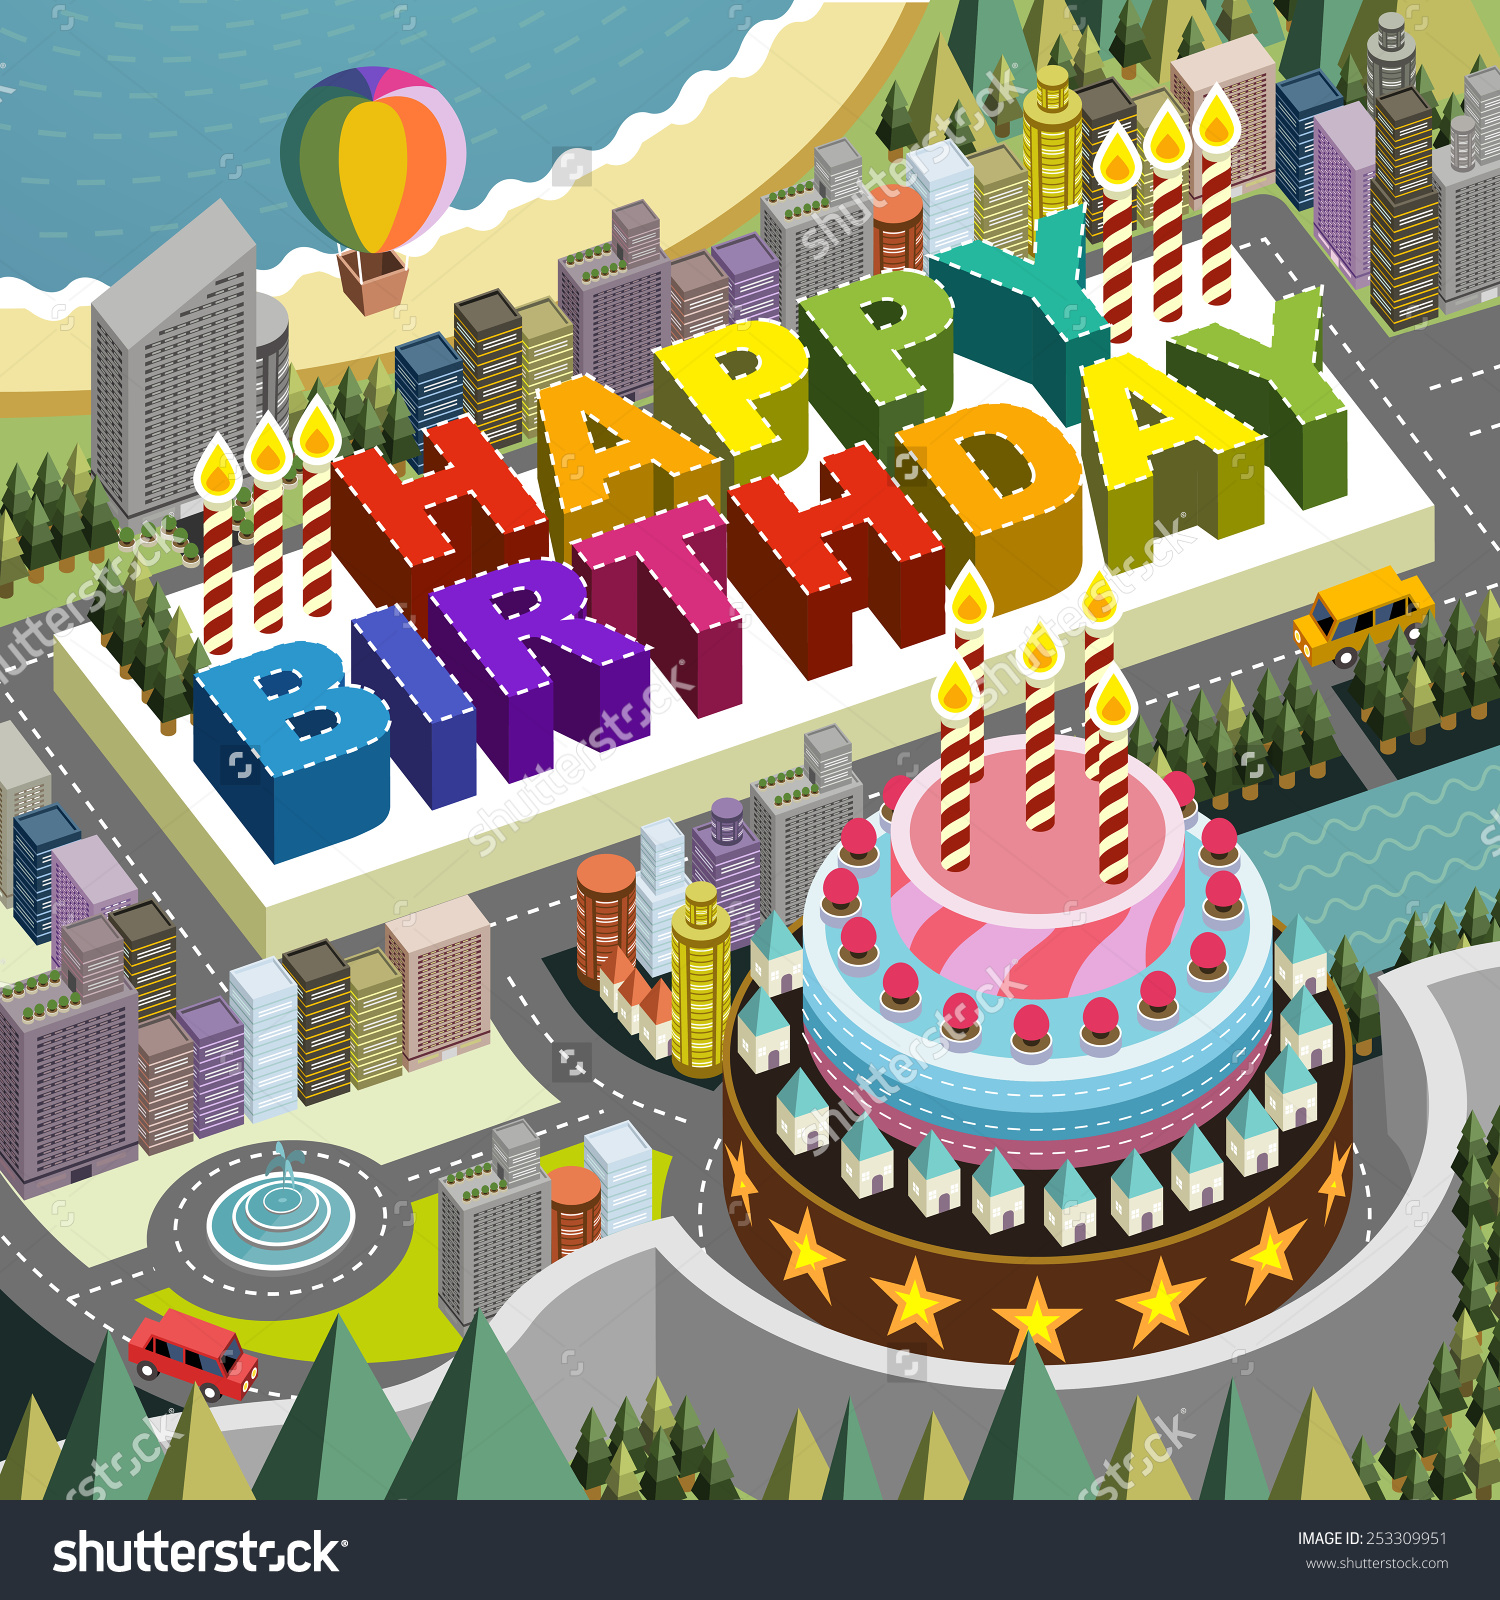 flat 3D isometric city scenery with big birthday cake illustration